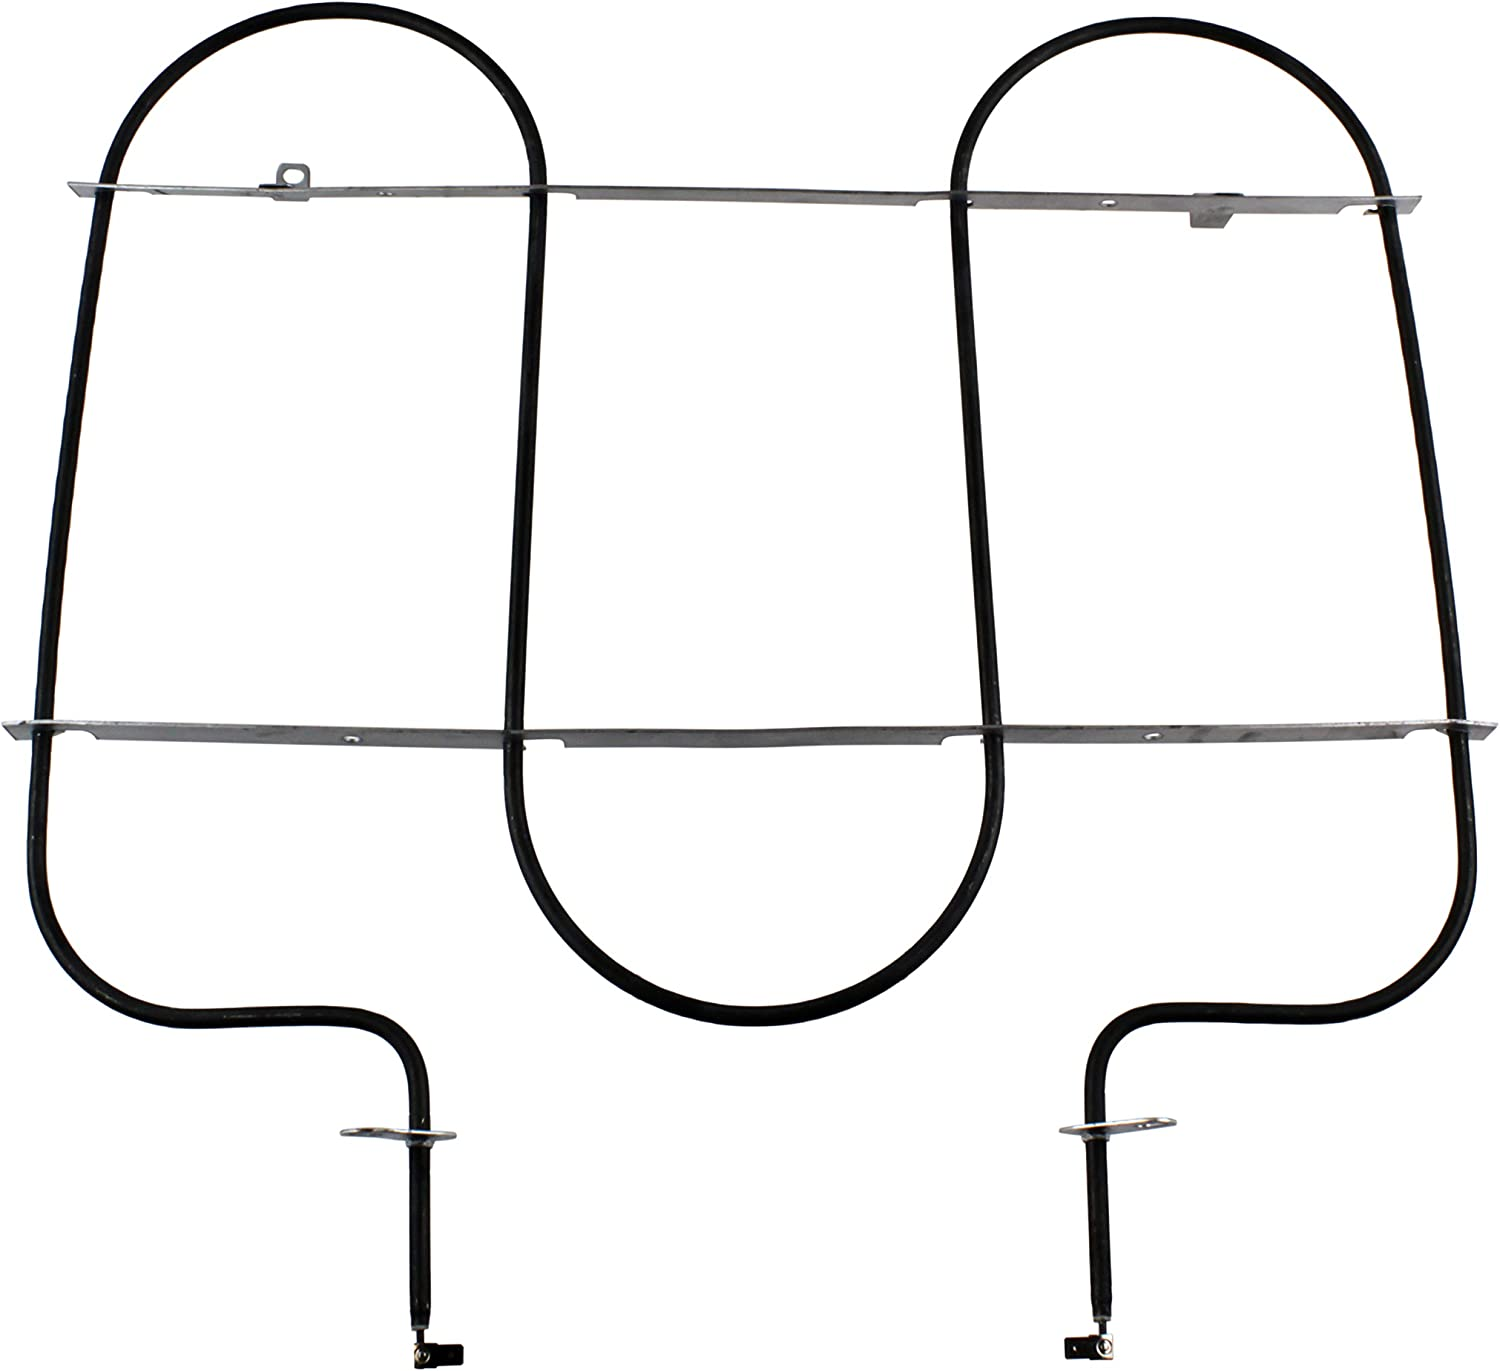 Supplying Demand 9757340 Broil Element Compatible With Whirlpool Fits W10856603, 814431